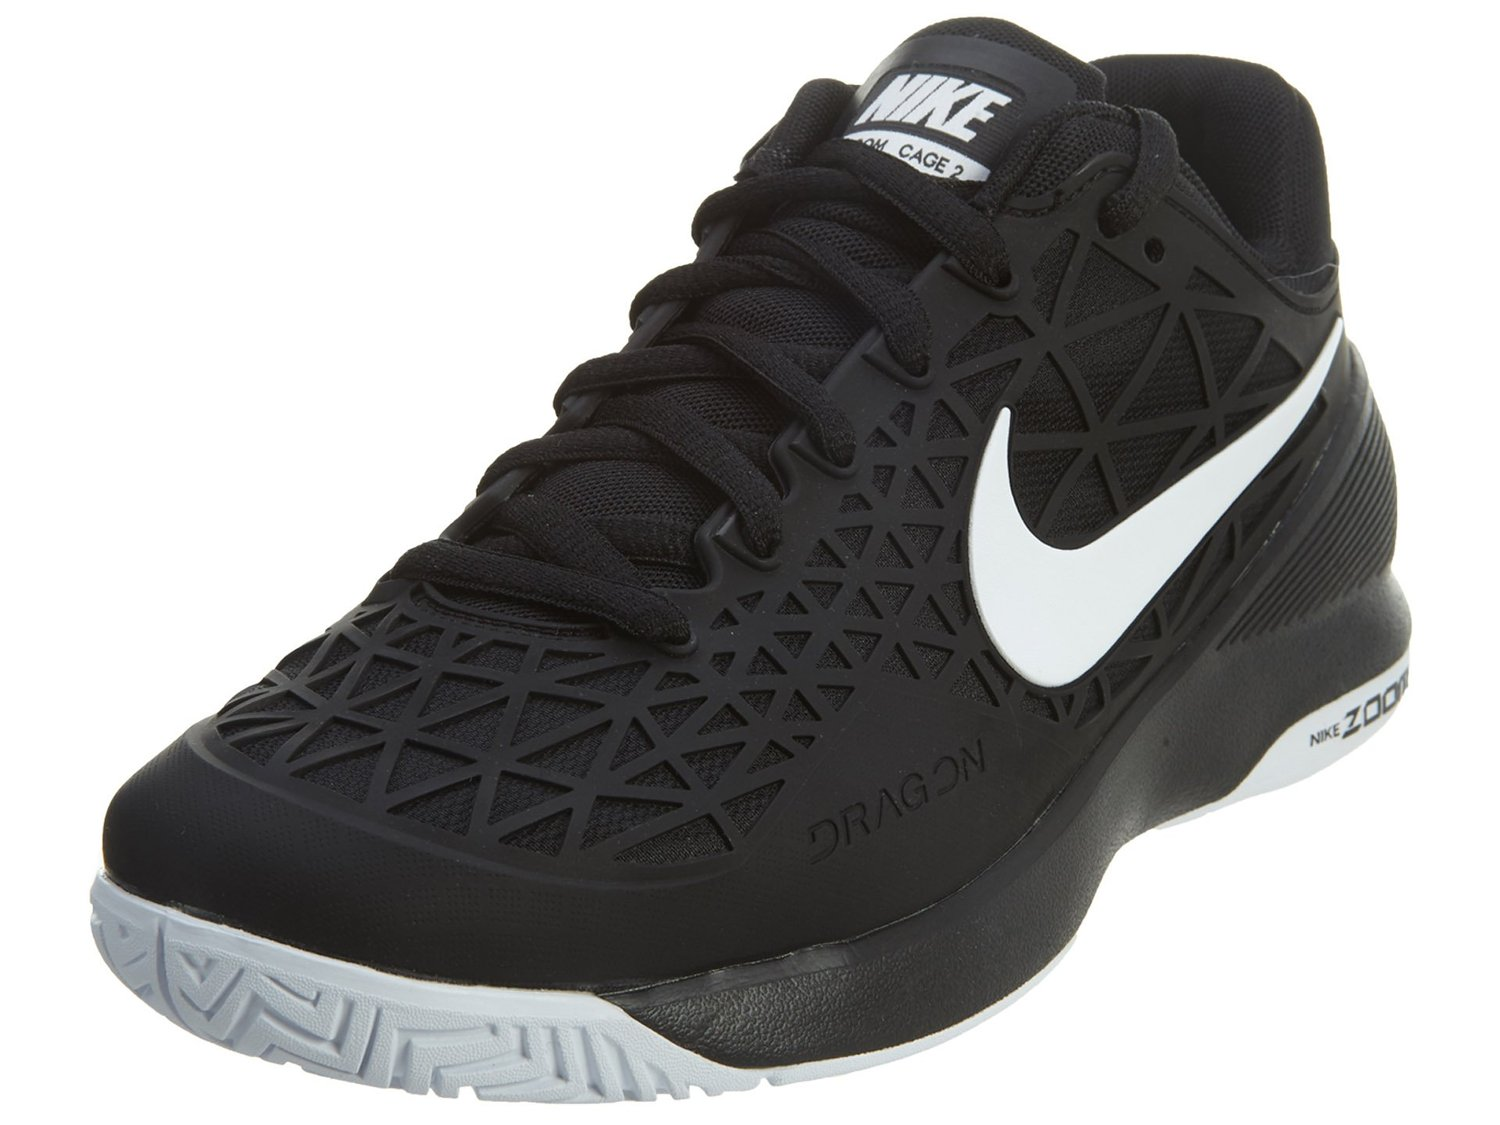 chaussures de tennis nike s lection caract ristiques et prix sportoza. Black Bedroom Furniture Sets. Home Design Ideas